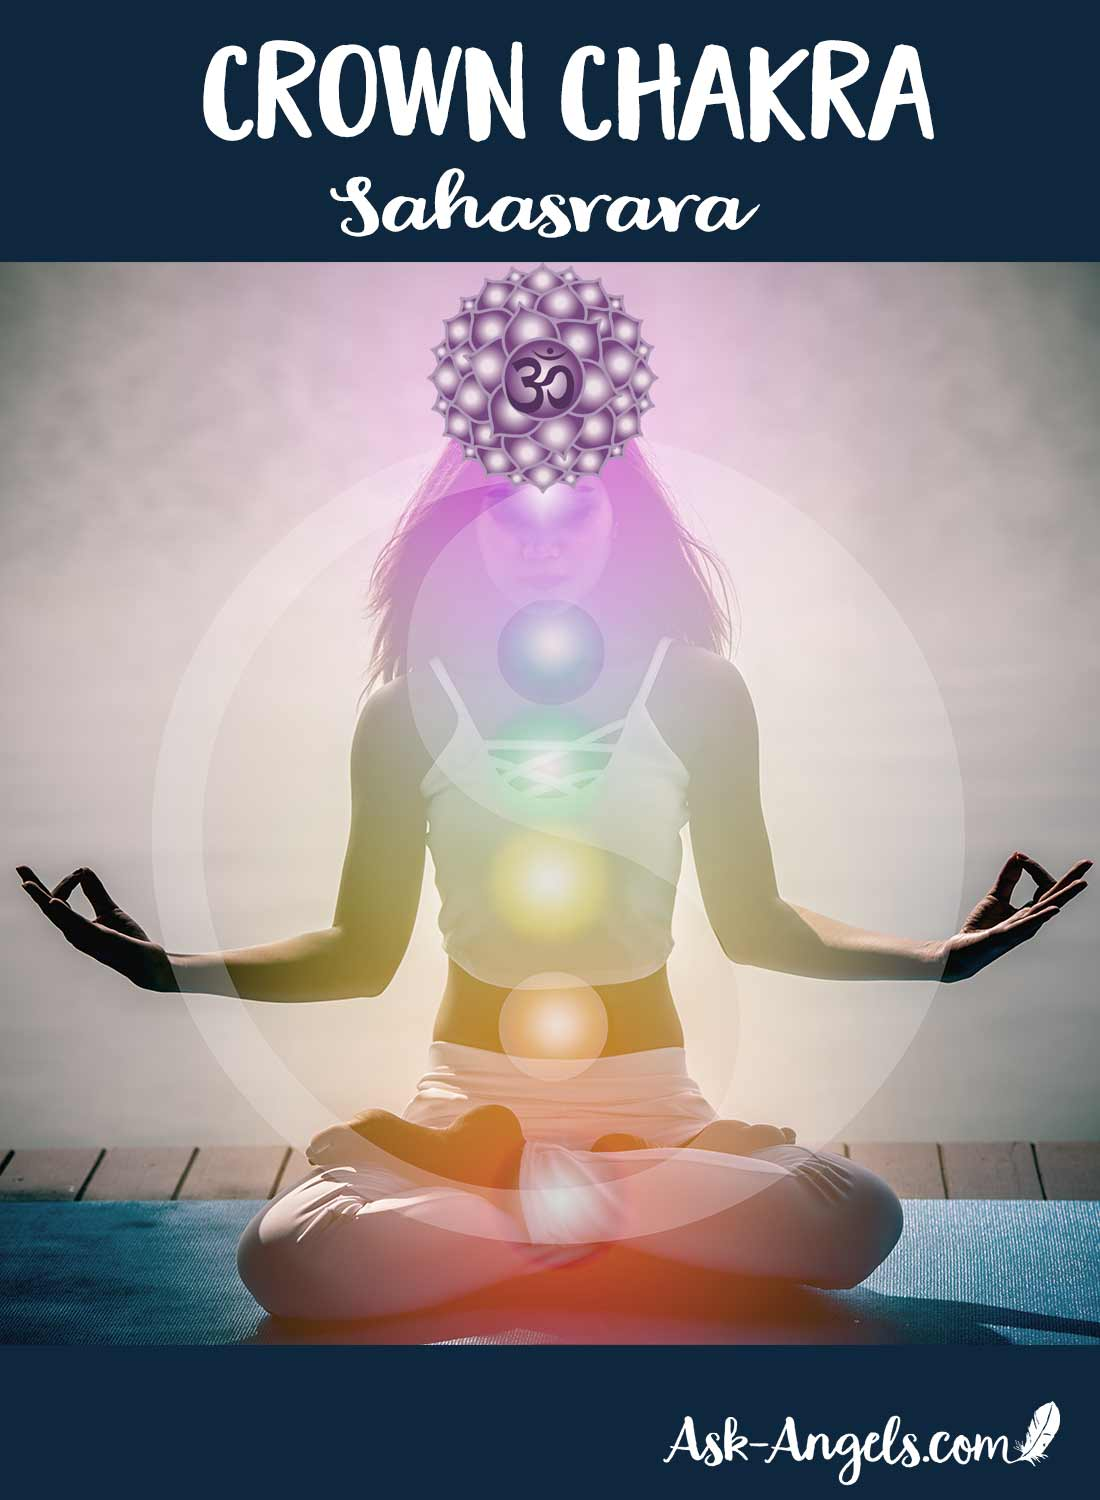 The seventh chakra, known as the crown chakra, Sahasrara, or the Thousand Petal Lotus is the energy center that allows you to connect to your higher self and universal consciousness. It connects you to the eternal part of yourself that goes beyond the ego.